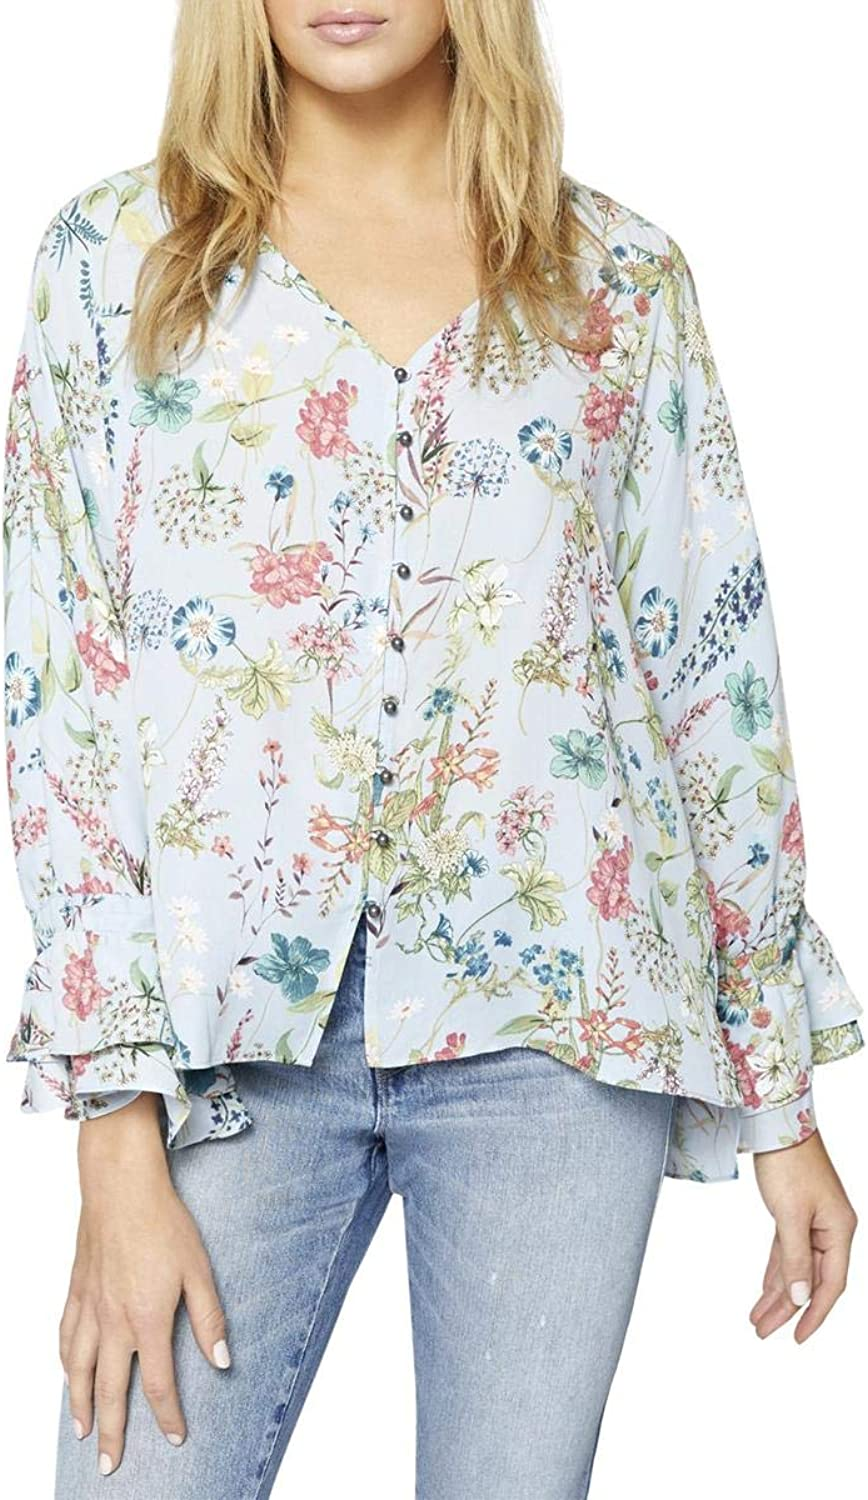 Sanctuary Womens Botanica Floral Print Bell Sleeves Blouse